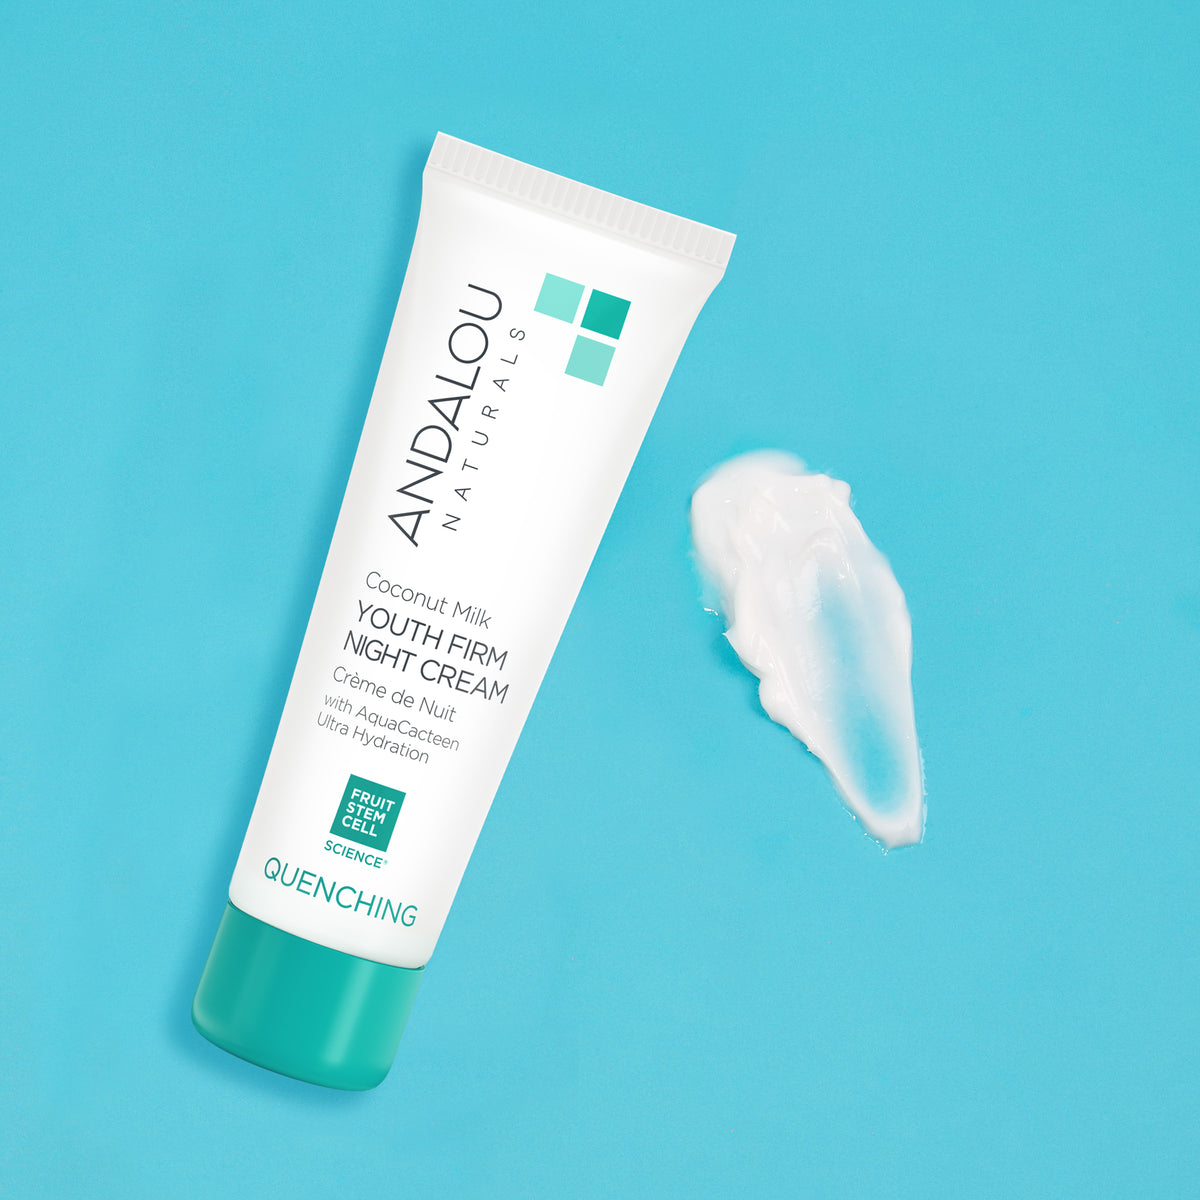 Smear of Quenching Coconut Milk Youth Firm Night Cream